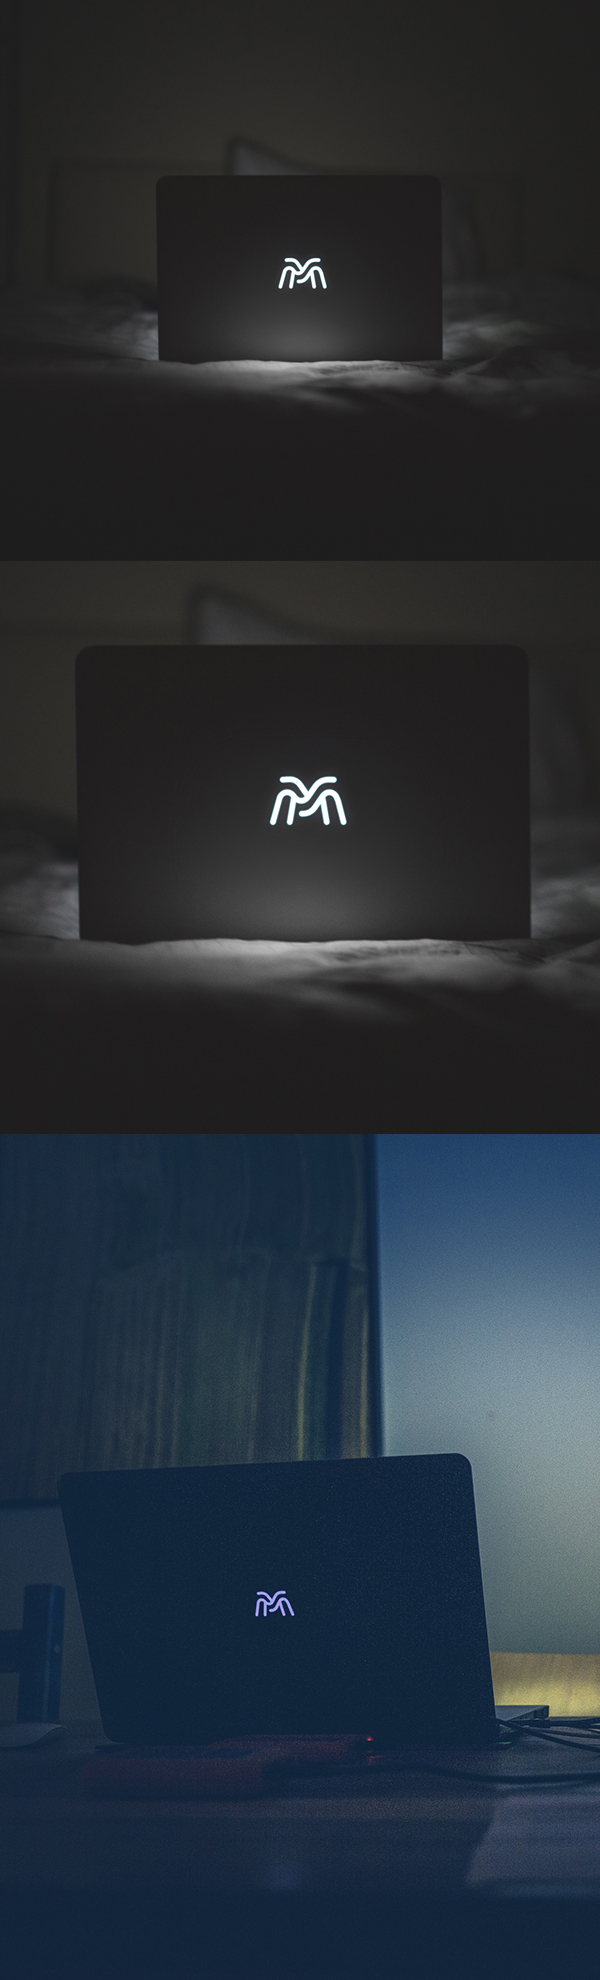 Free Backlight Macbook Logo Mockup